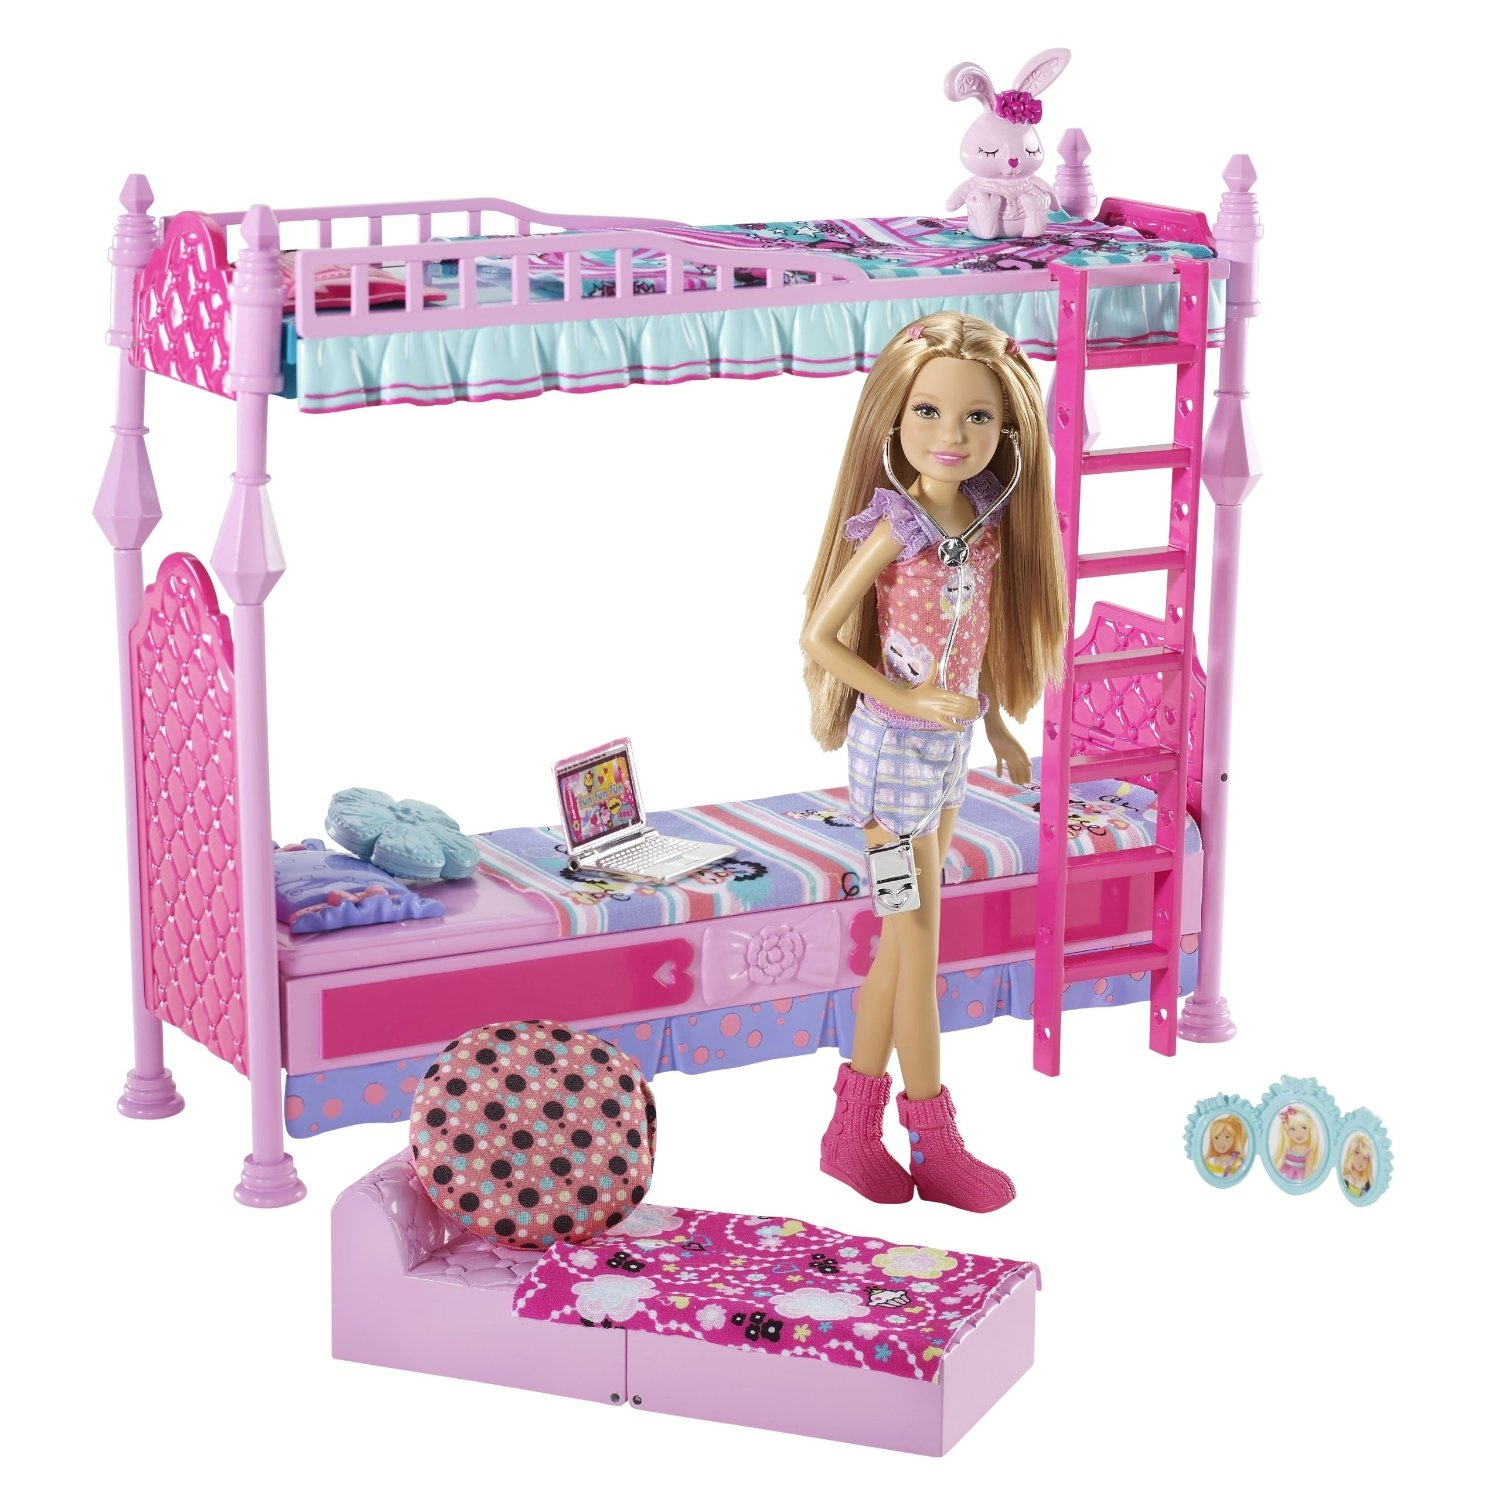 Awesome Barbie Sisters Sleeptime Bedroom And Stacie Doll Set Download Free Architecture Designs Rallybritishbridgeorg